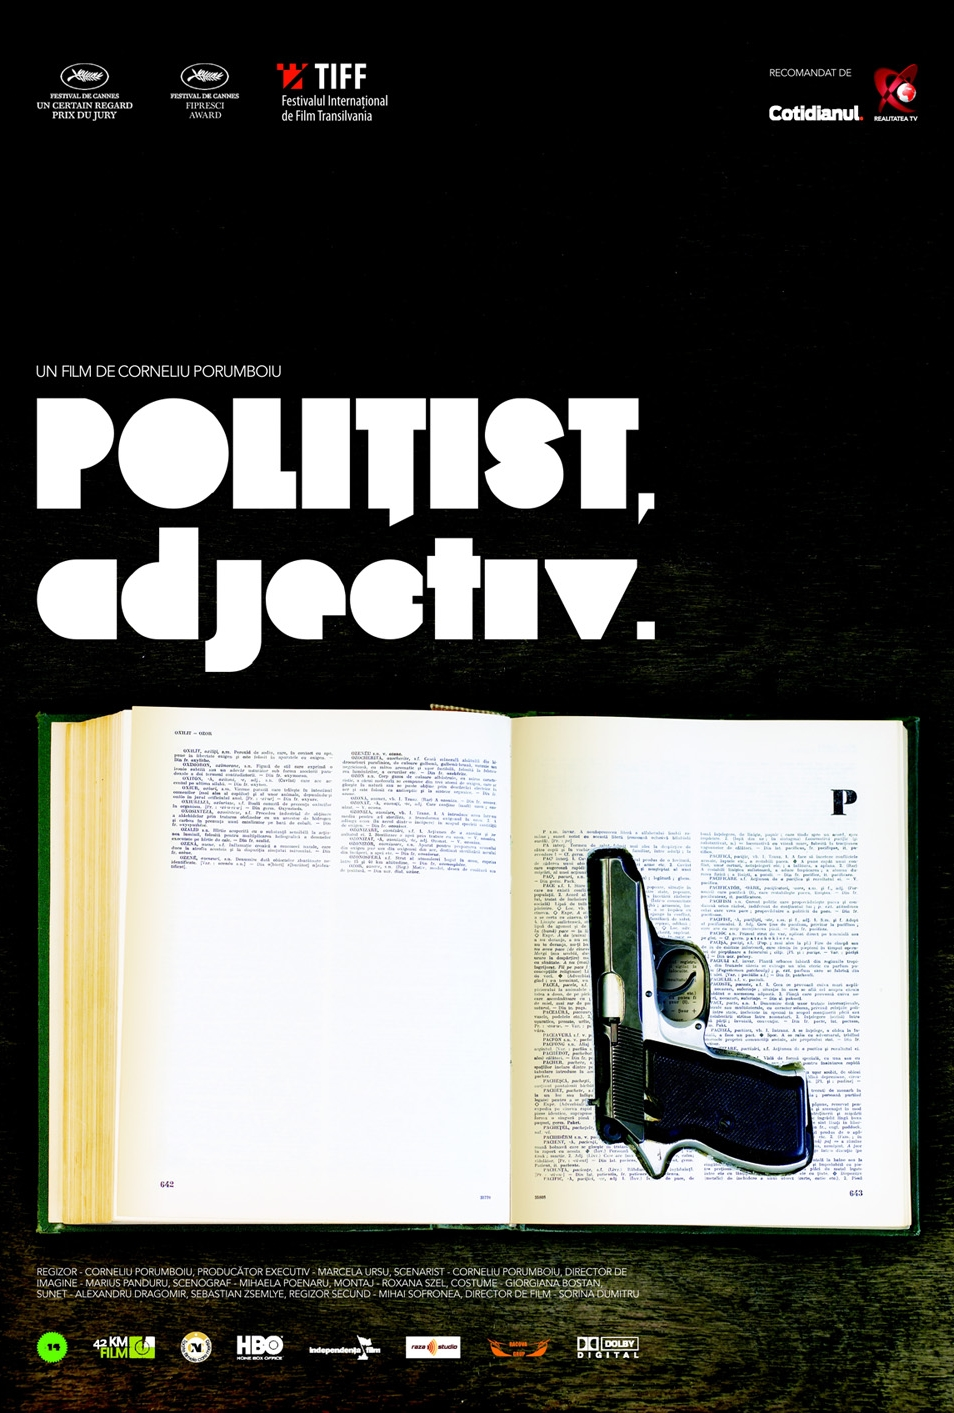 Politist, adjectiv movie